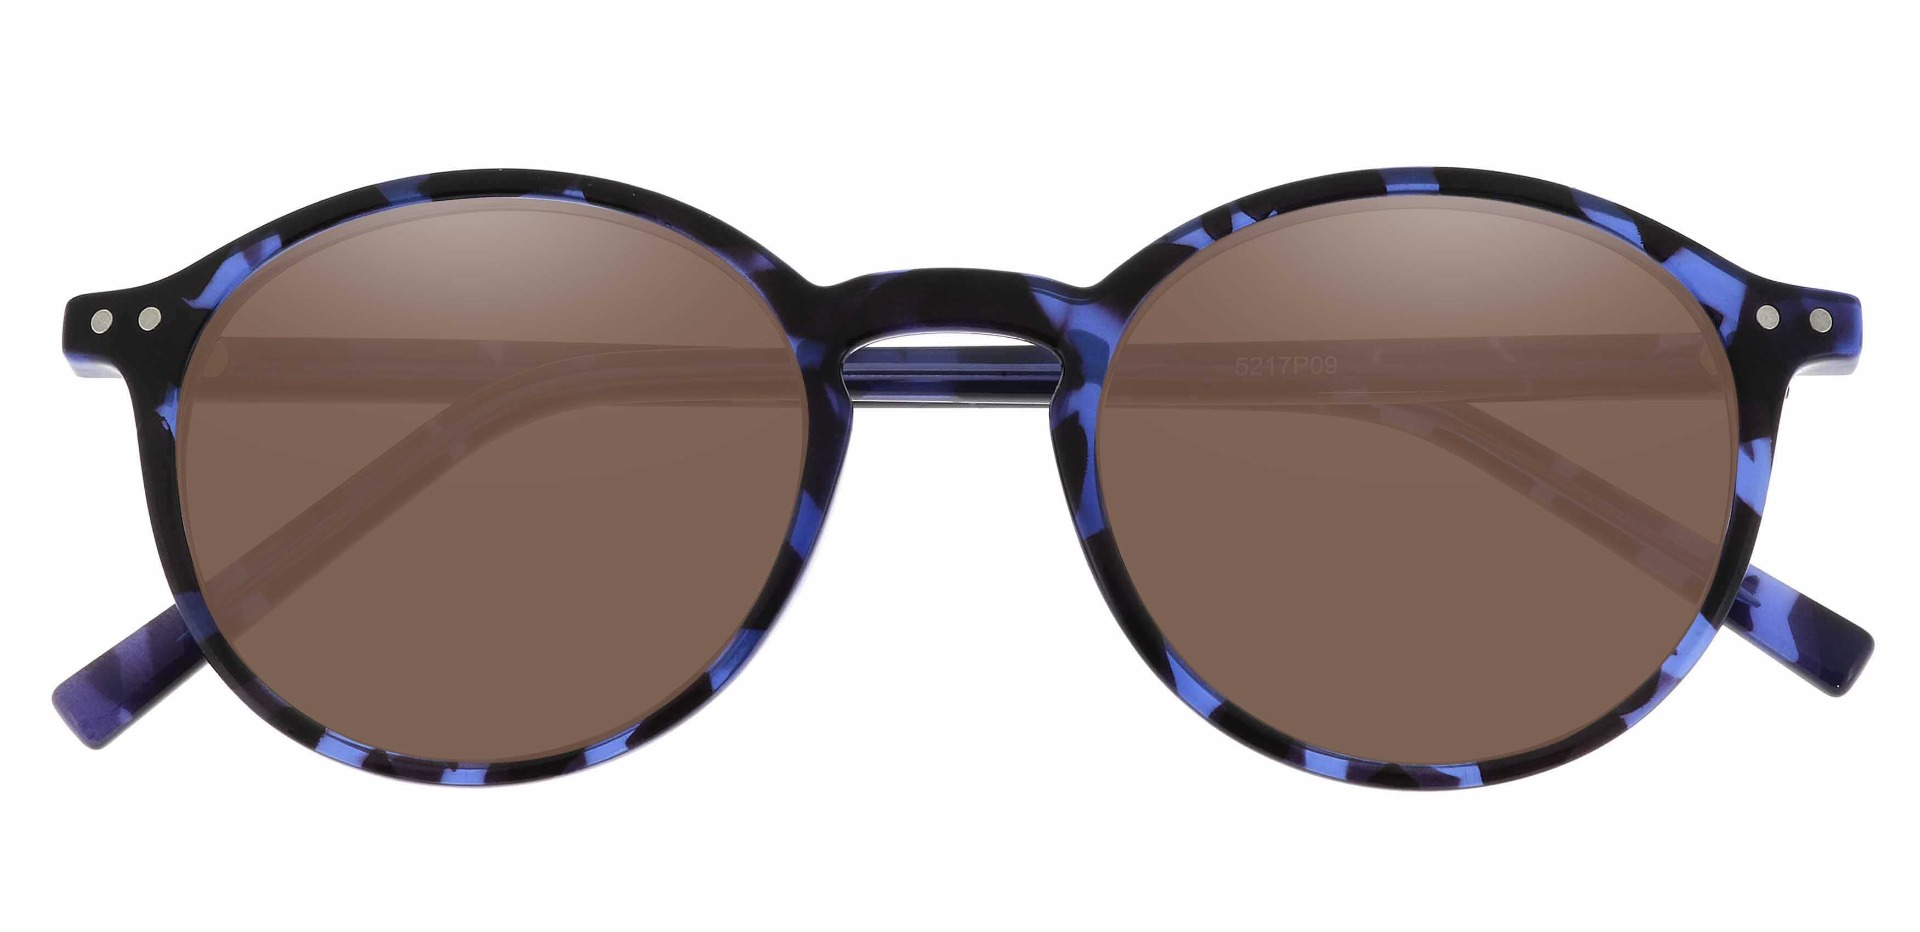 Harvard Round Prescription Sunglasses - Blue Frame With Brown Lenses